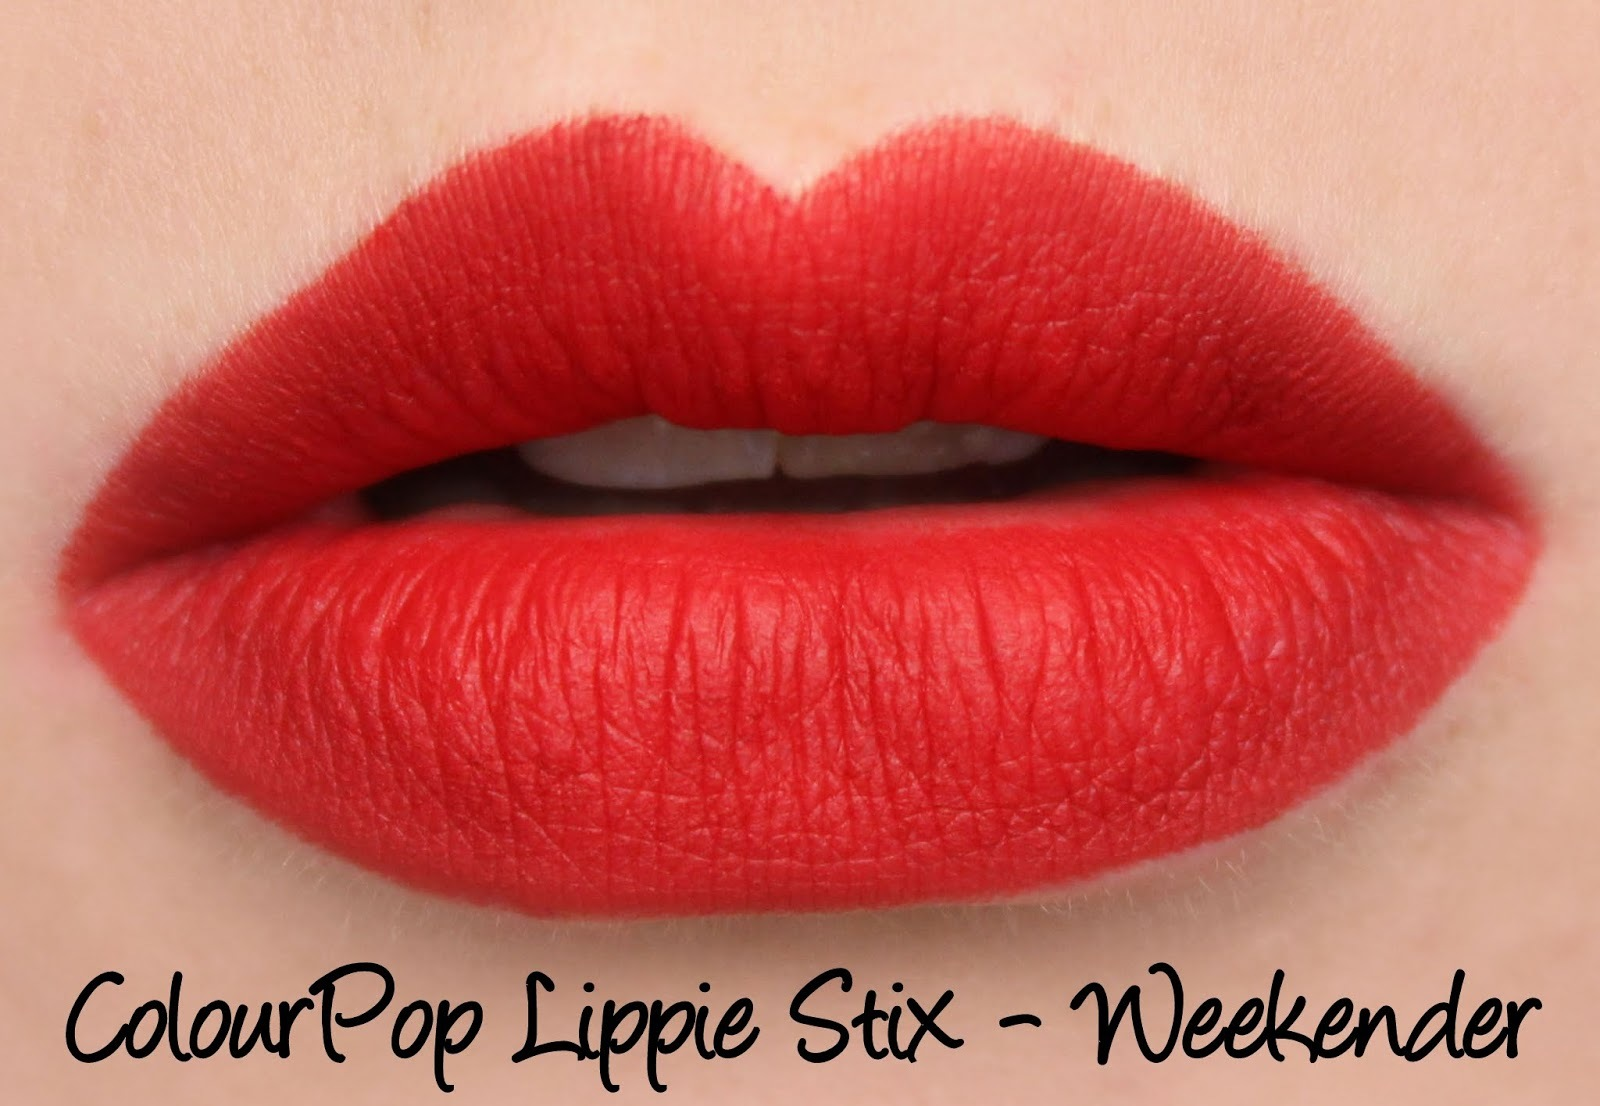 ColourPop%2BLippie%2BStix%2B-%2BWeekender%2Bswatch%2B2